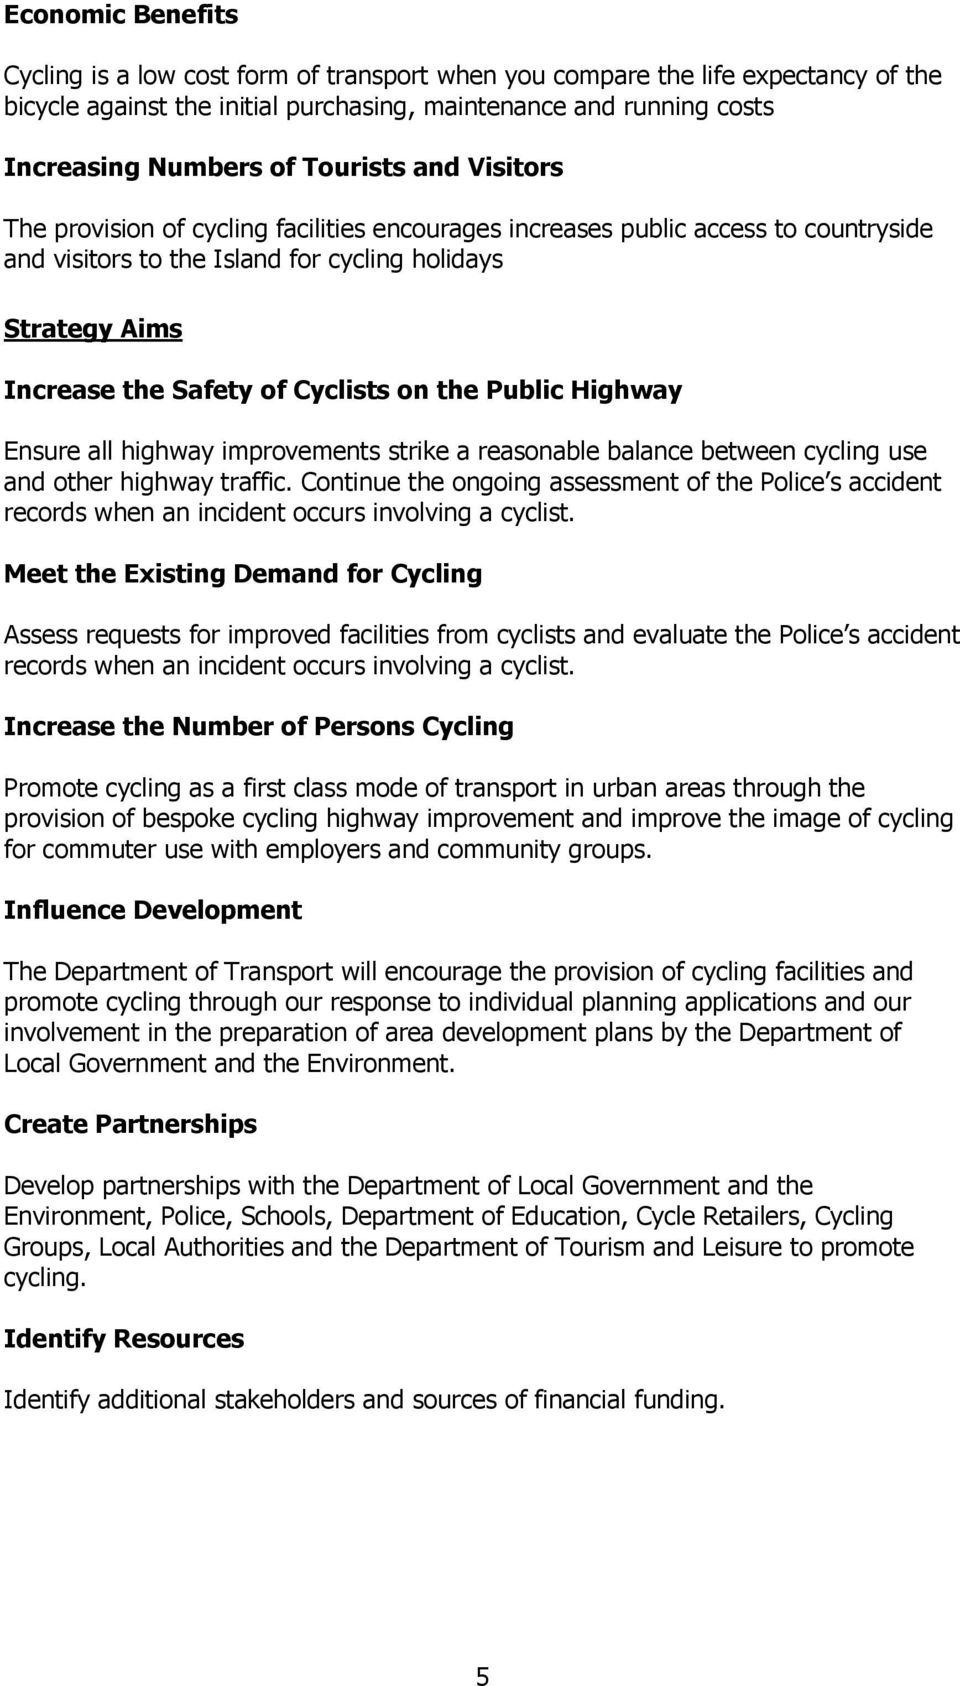 Cyclists on the Public Highway Ensure all highway improvements strike a reasonable balance between cycling use and other highway traffic.